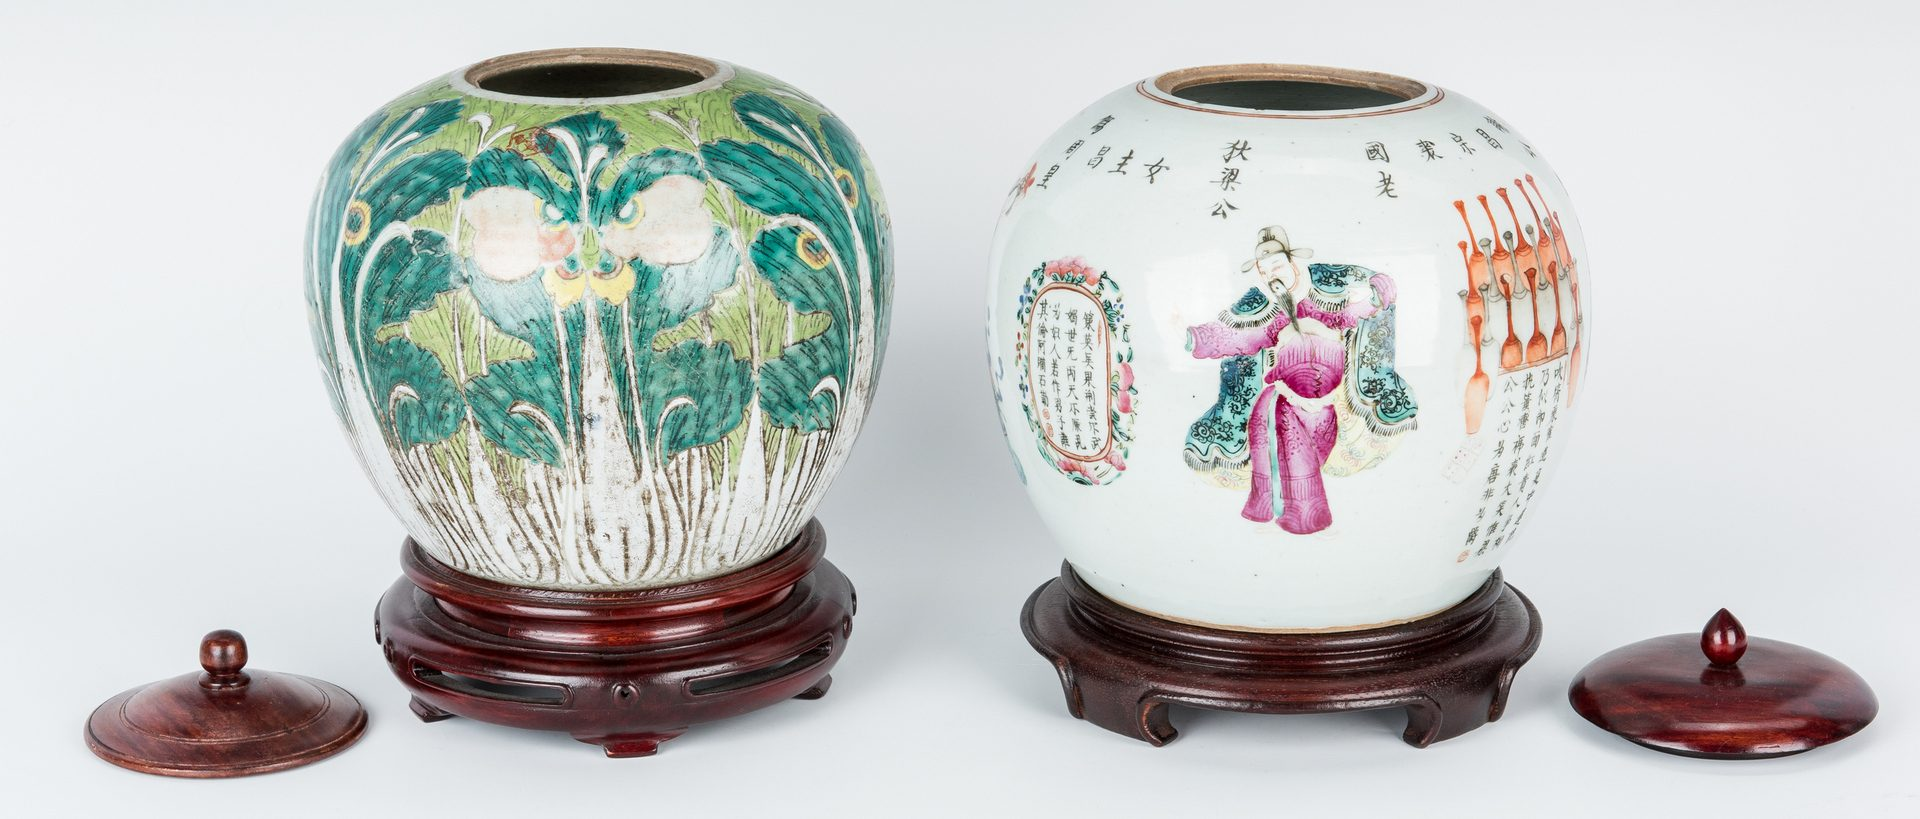 Lot 461: 2 Chinese Export Ginger Jars, early 20th c.